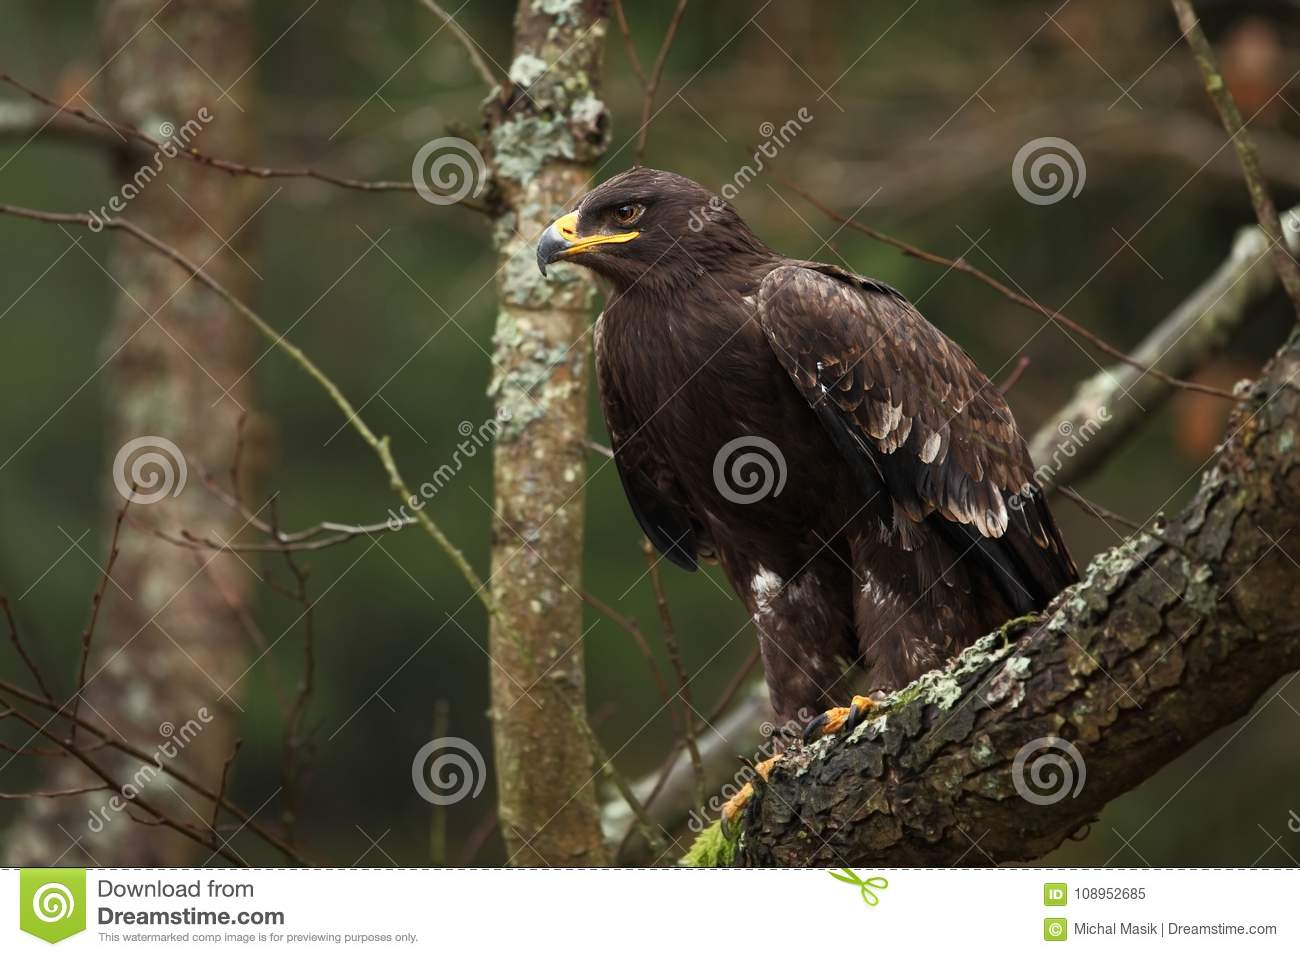 Aquila nipalensis. It is expanded in Russia, Africa, Central Asia, Arabia, India, Mongolia and China.